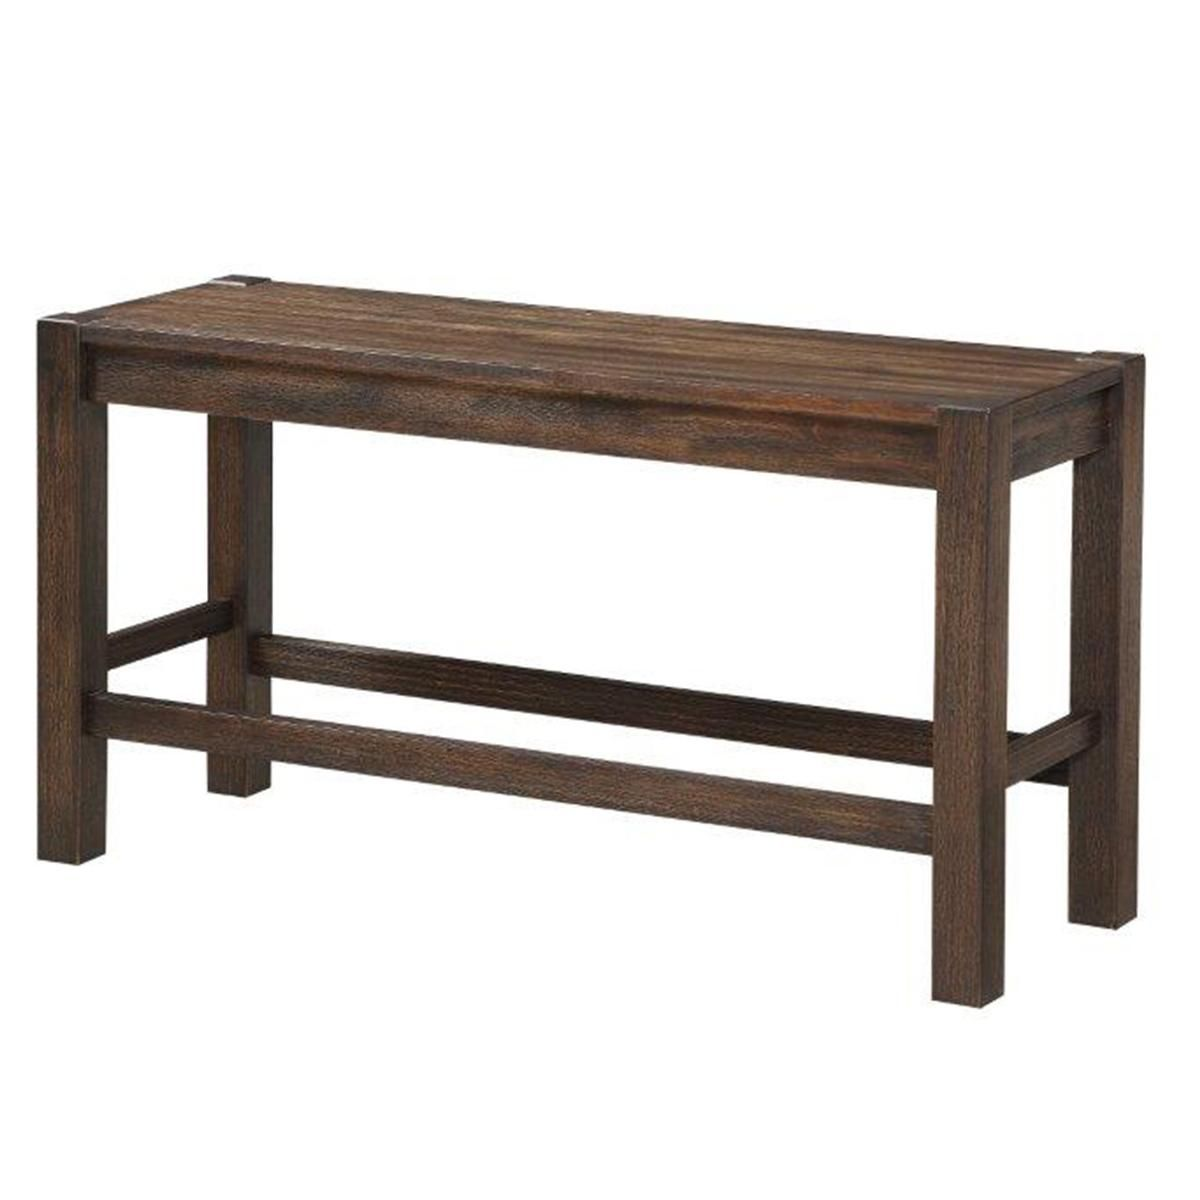 Frankfurt Furniture Rustic Counter Bench In Brown Wire Brush